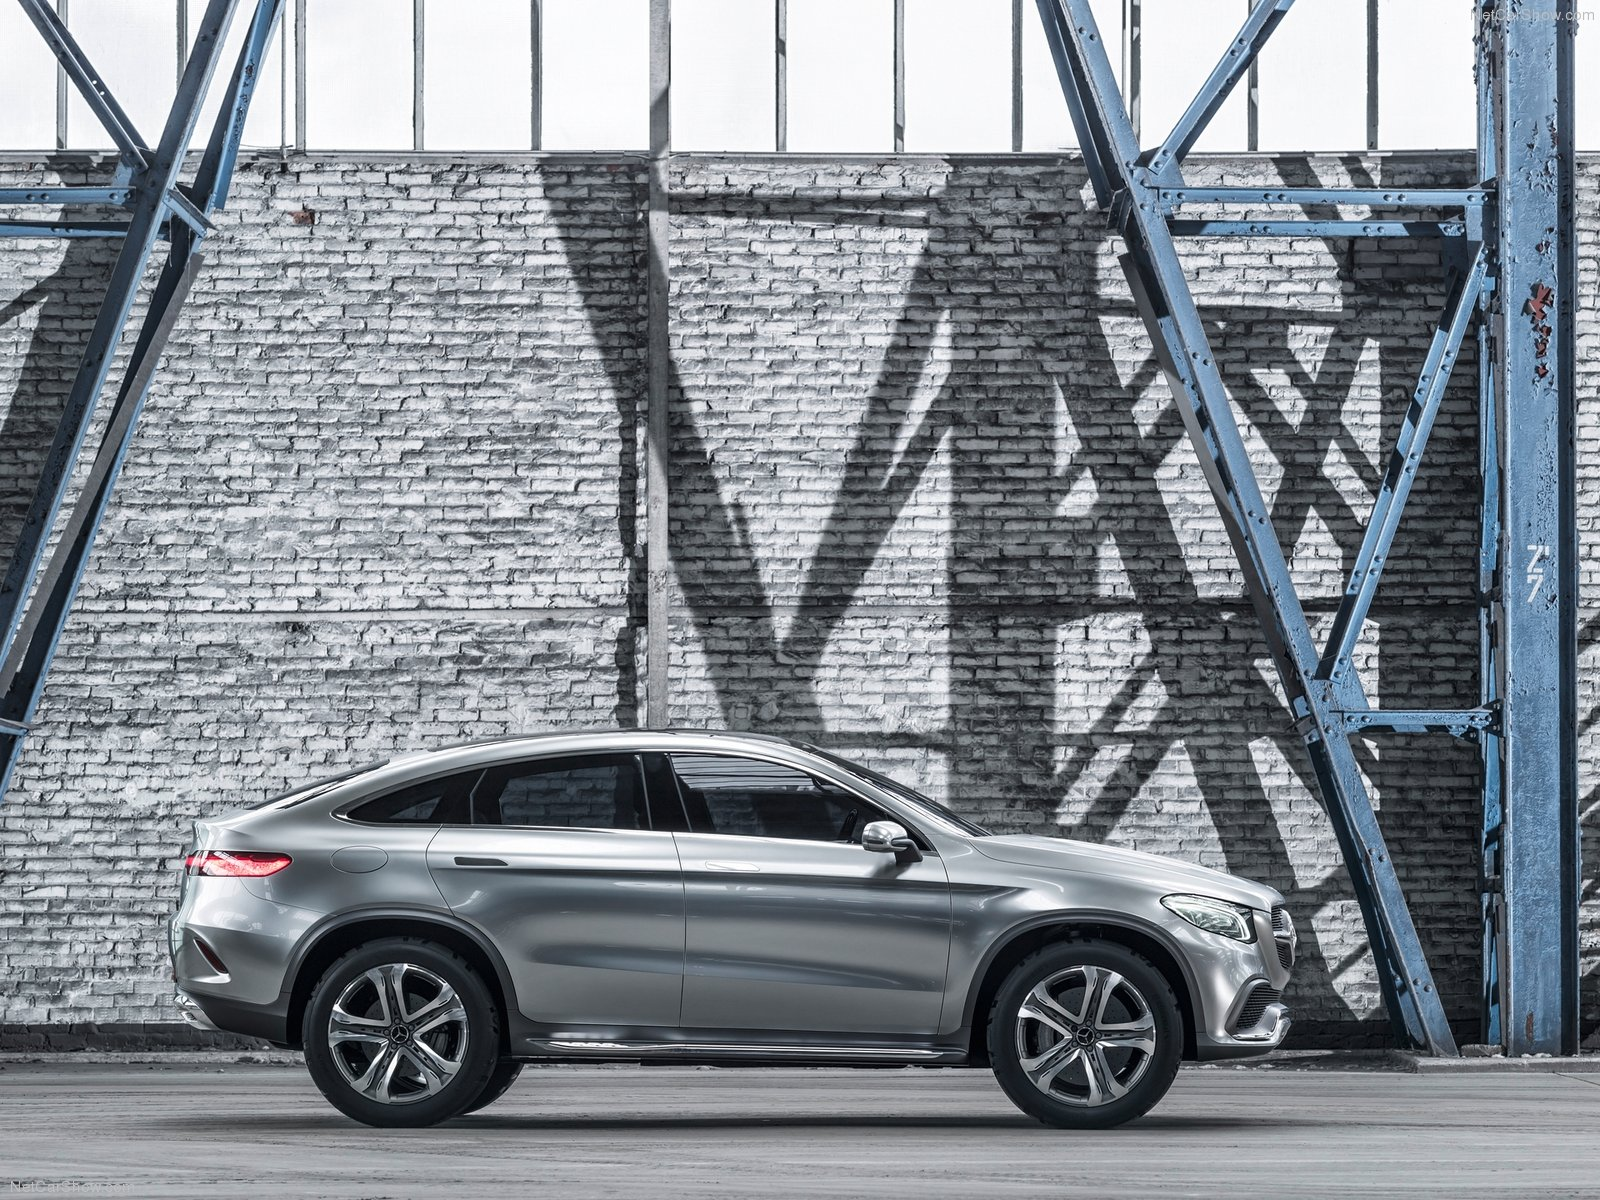 Mercedes Benz Coupe SUV Wallpaper